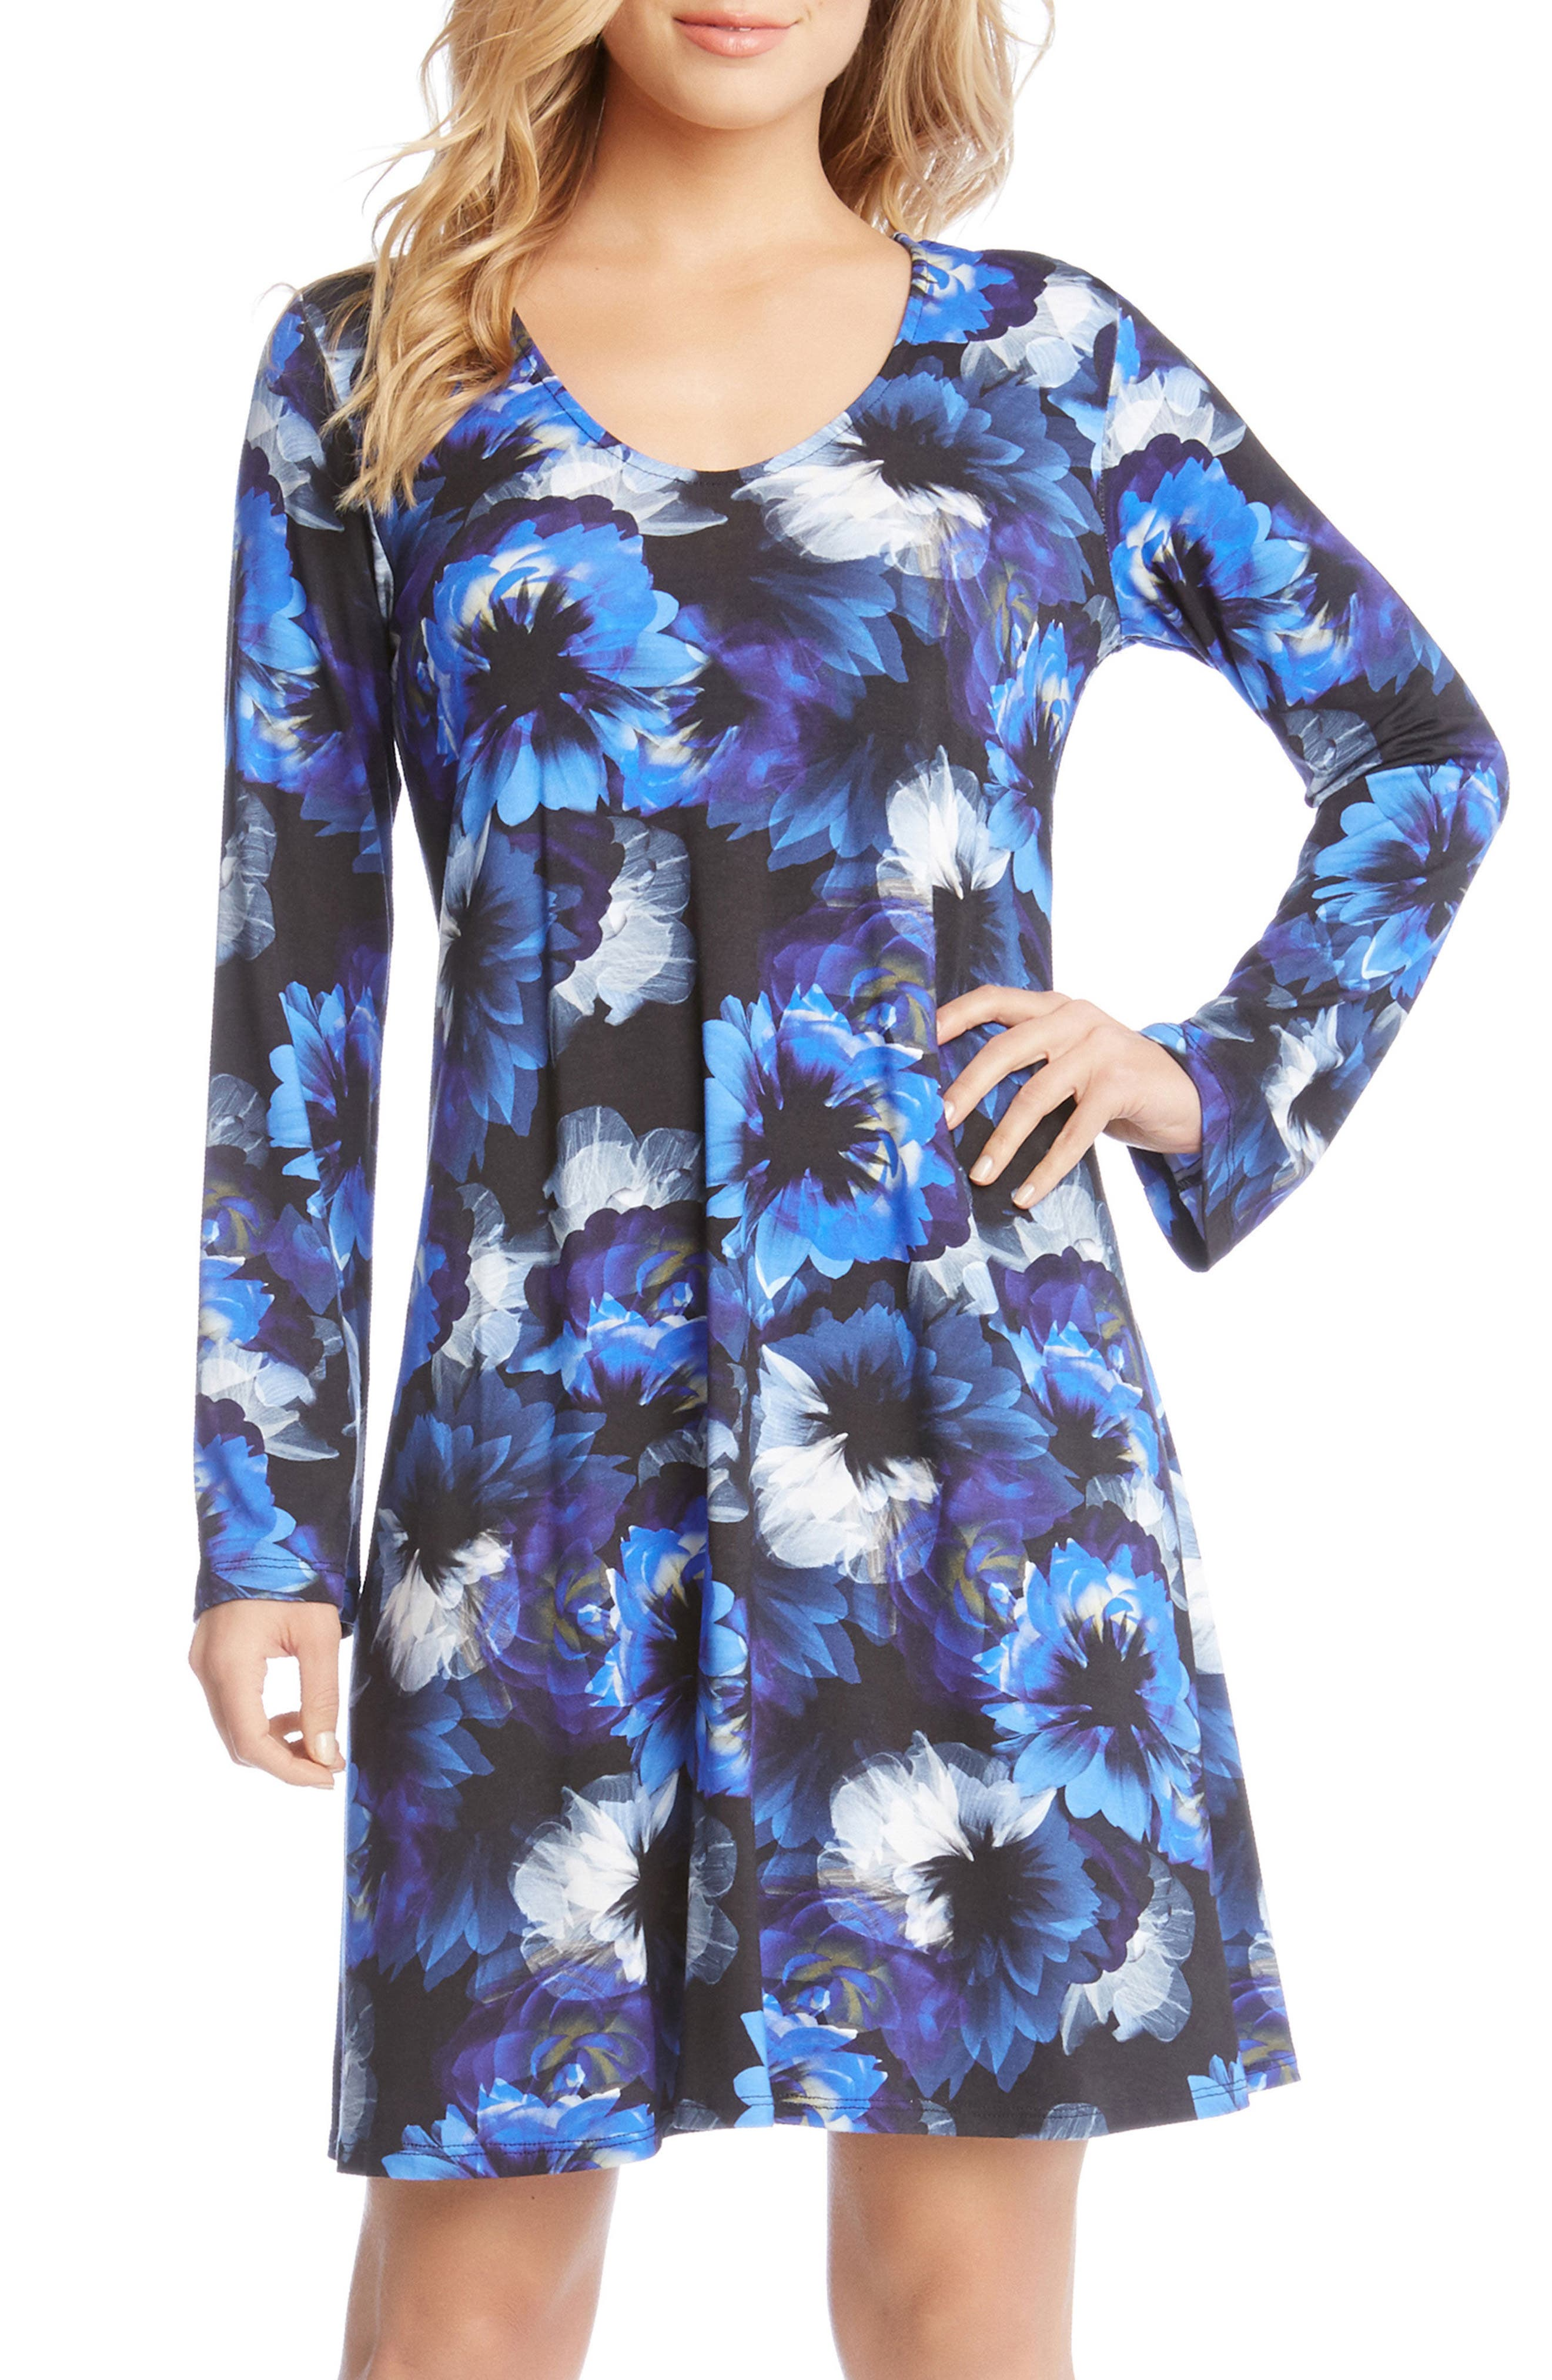 Alternate Image 1 Selected - Karen Kane Taylor Midnight Floral Print A-Line Dress